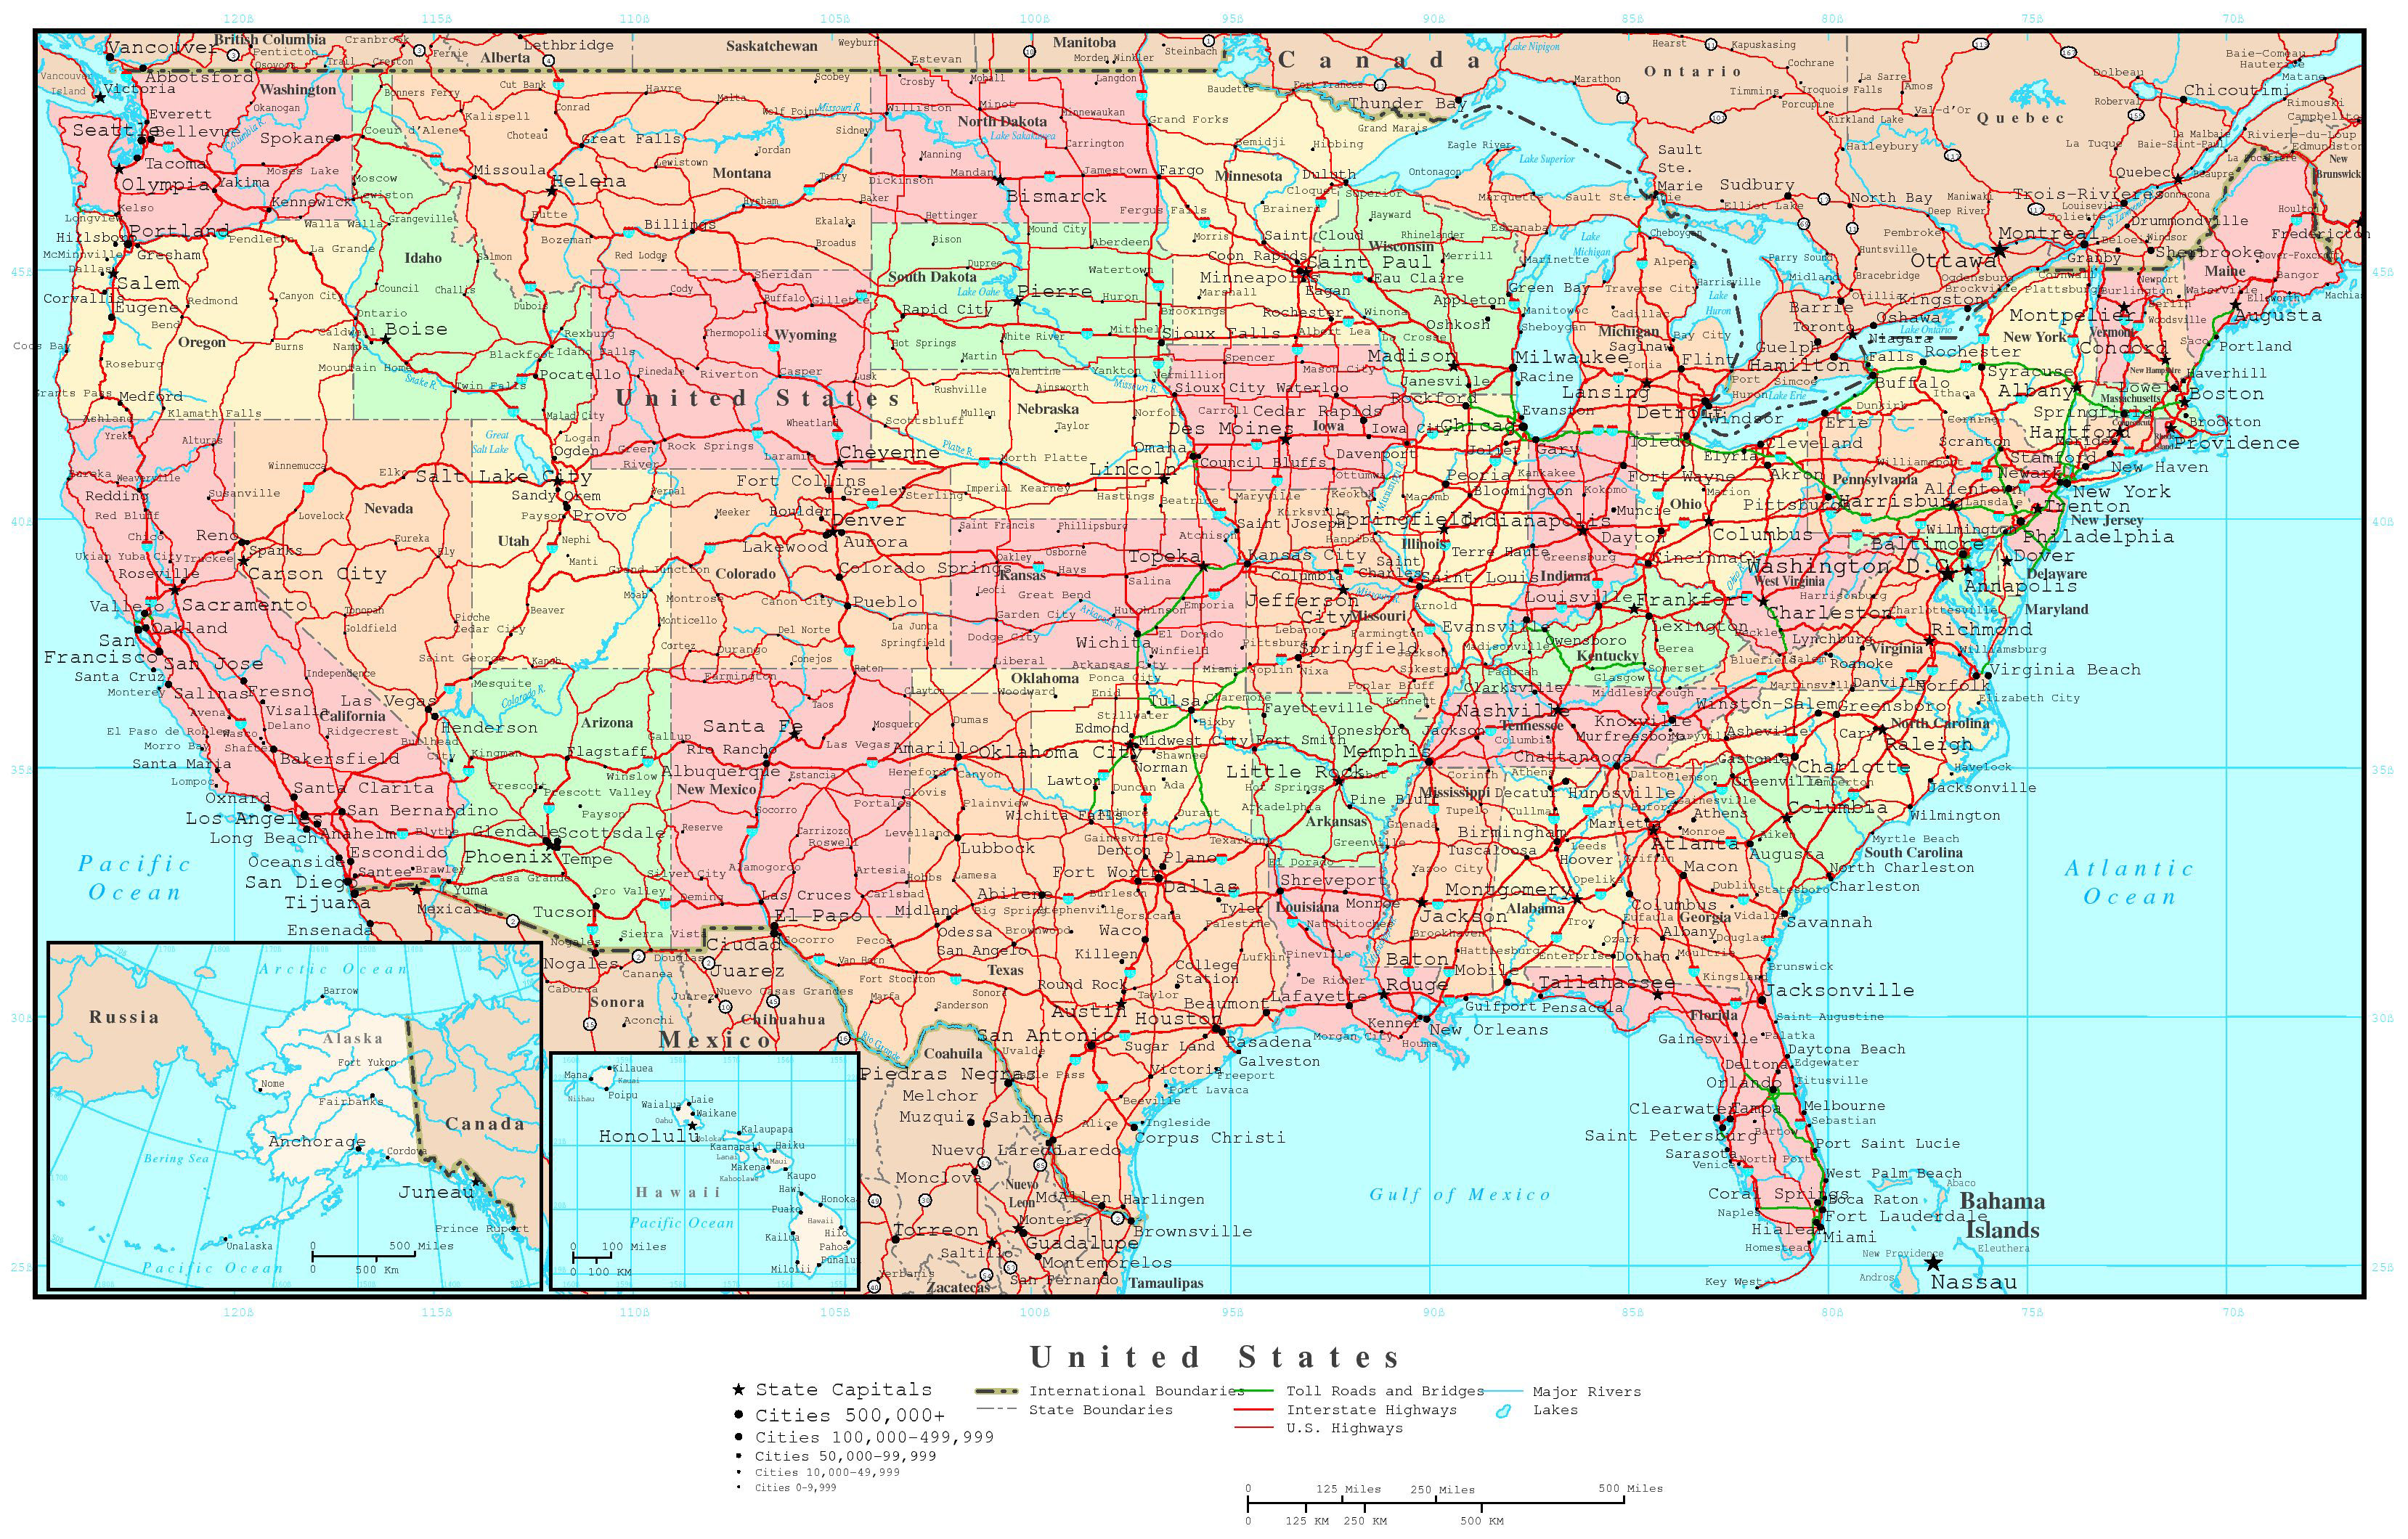 Nashville Maps Tennessee US Maps Of Nashville Geography Blog US - Map us oil fields